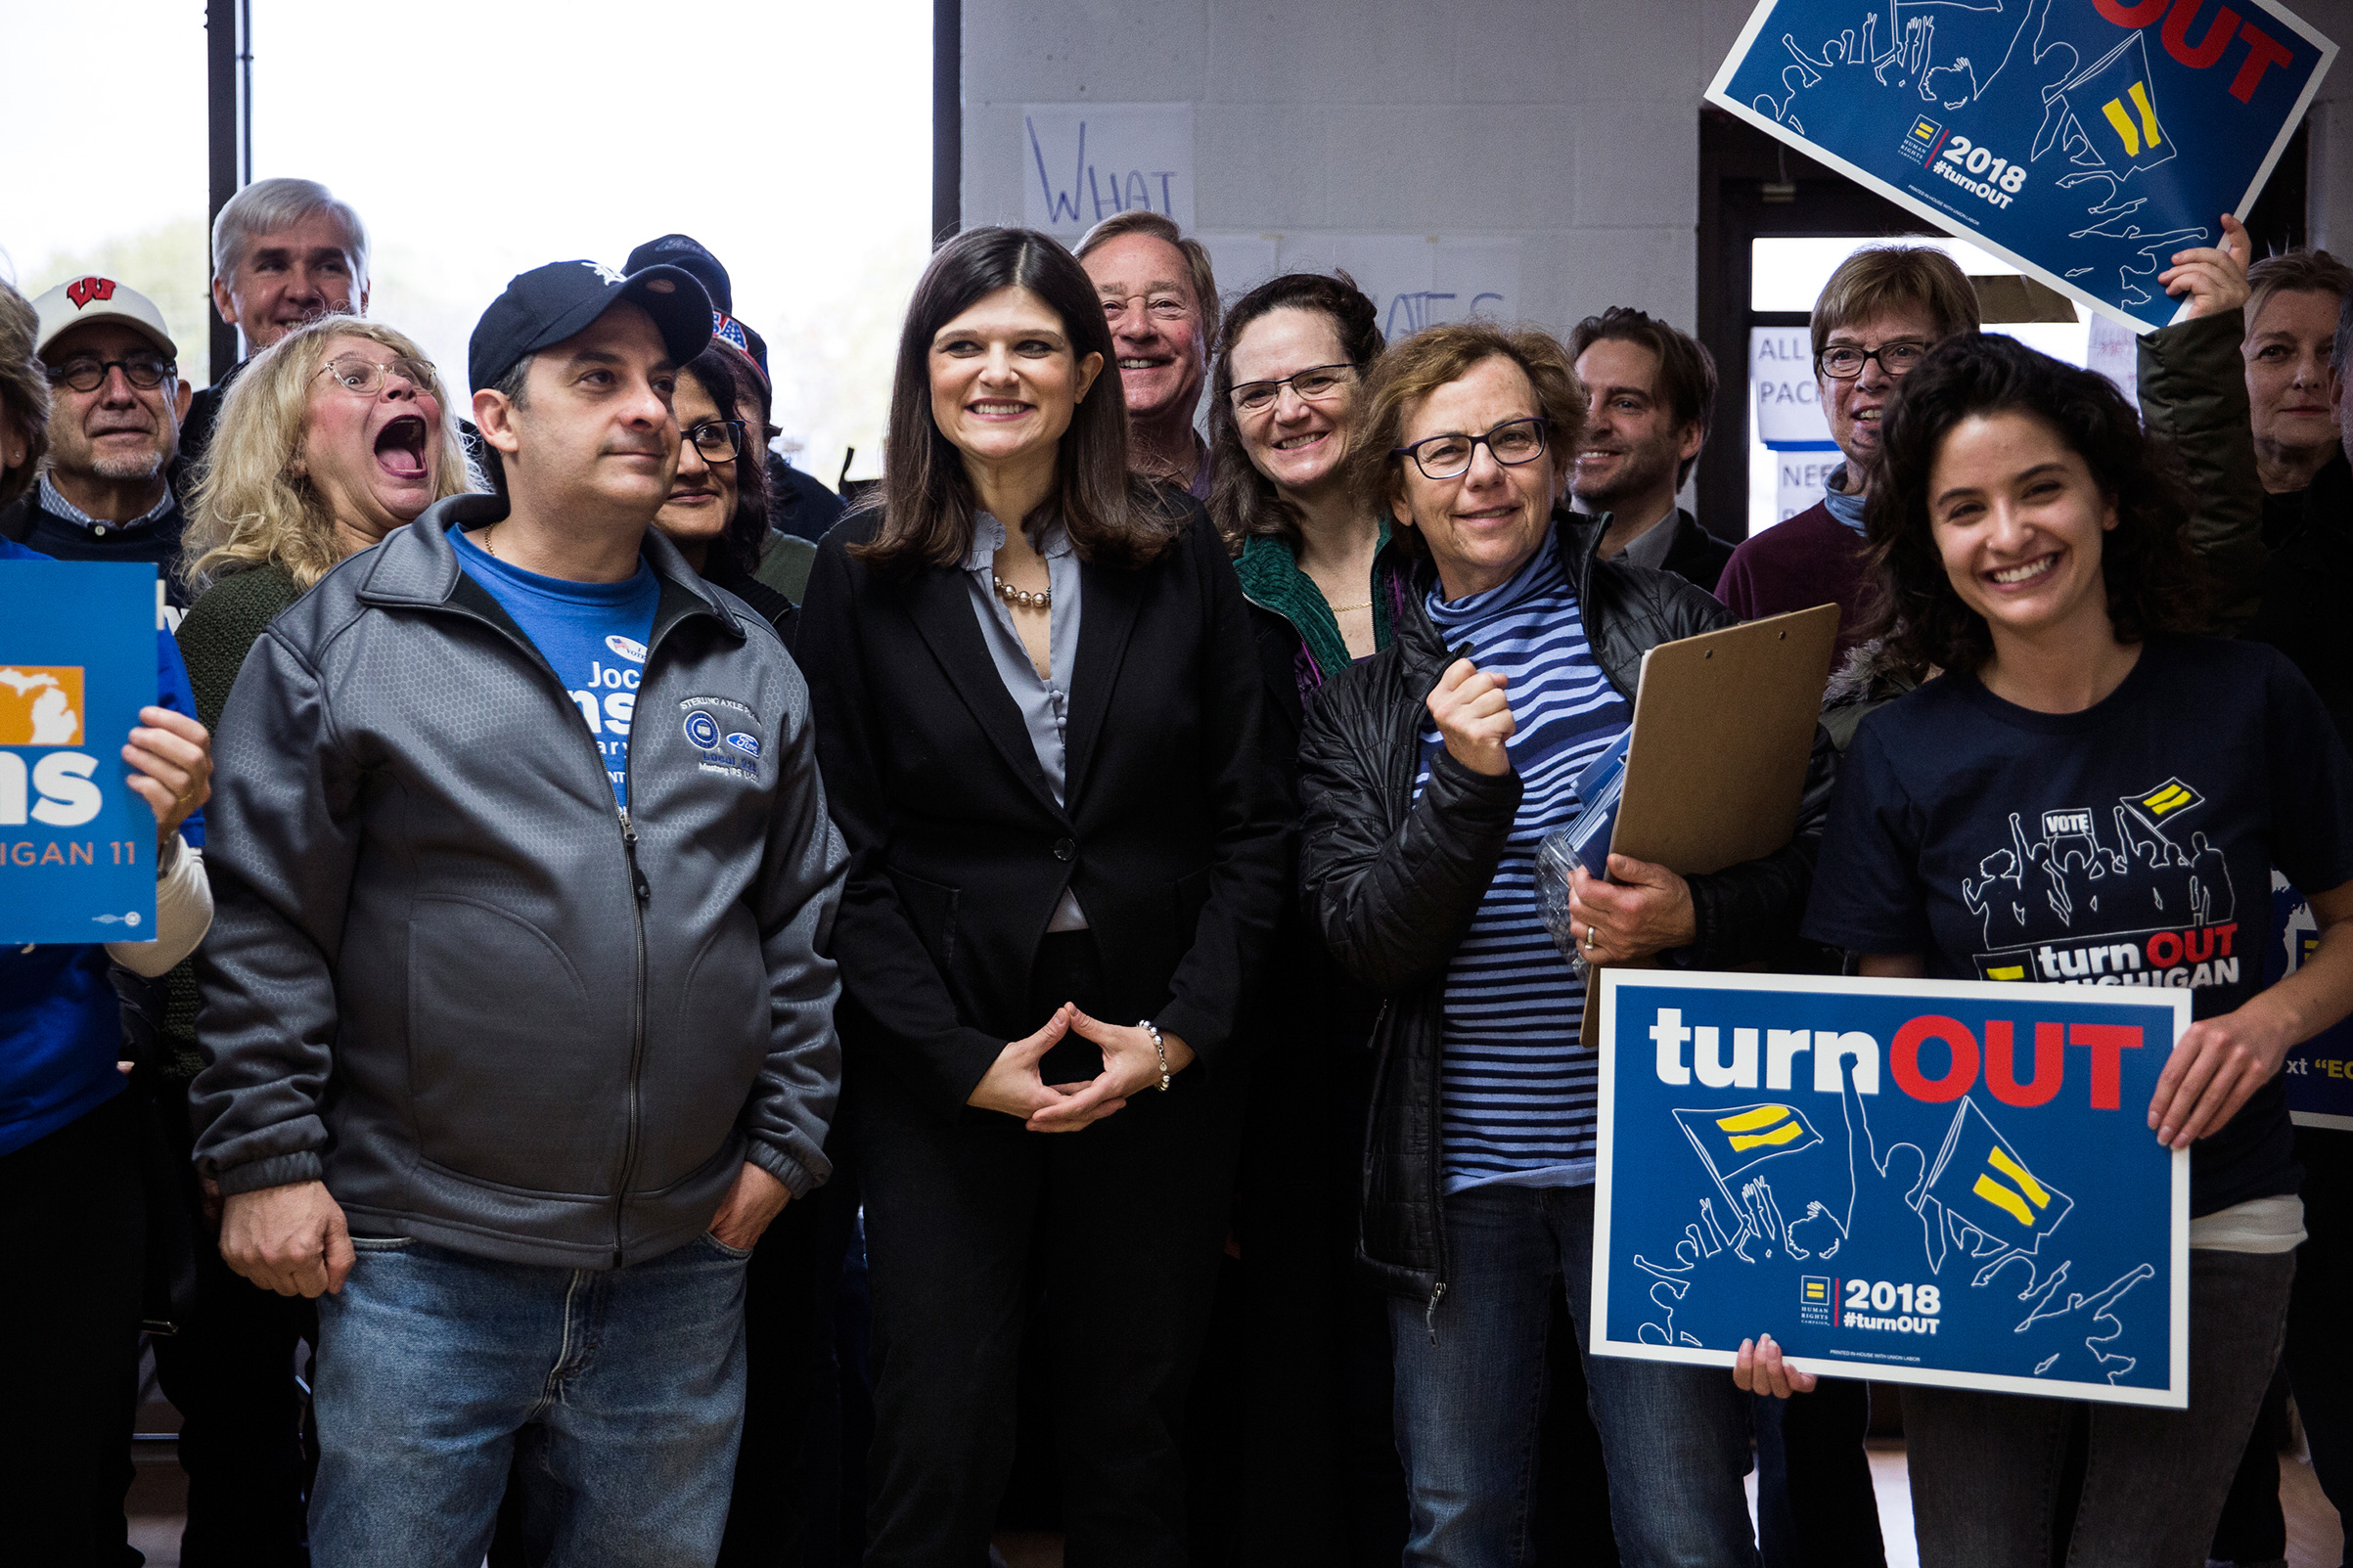 Democratic candidate for Michigan's 11th Congressional District Haley Stevens, center, poses for a picture with supporters and volunteers while launching election day canvassing at Stevens' Field Office in Troy, Mich, on Nov. 6, 2018.